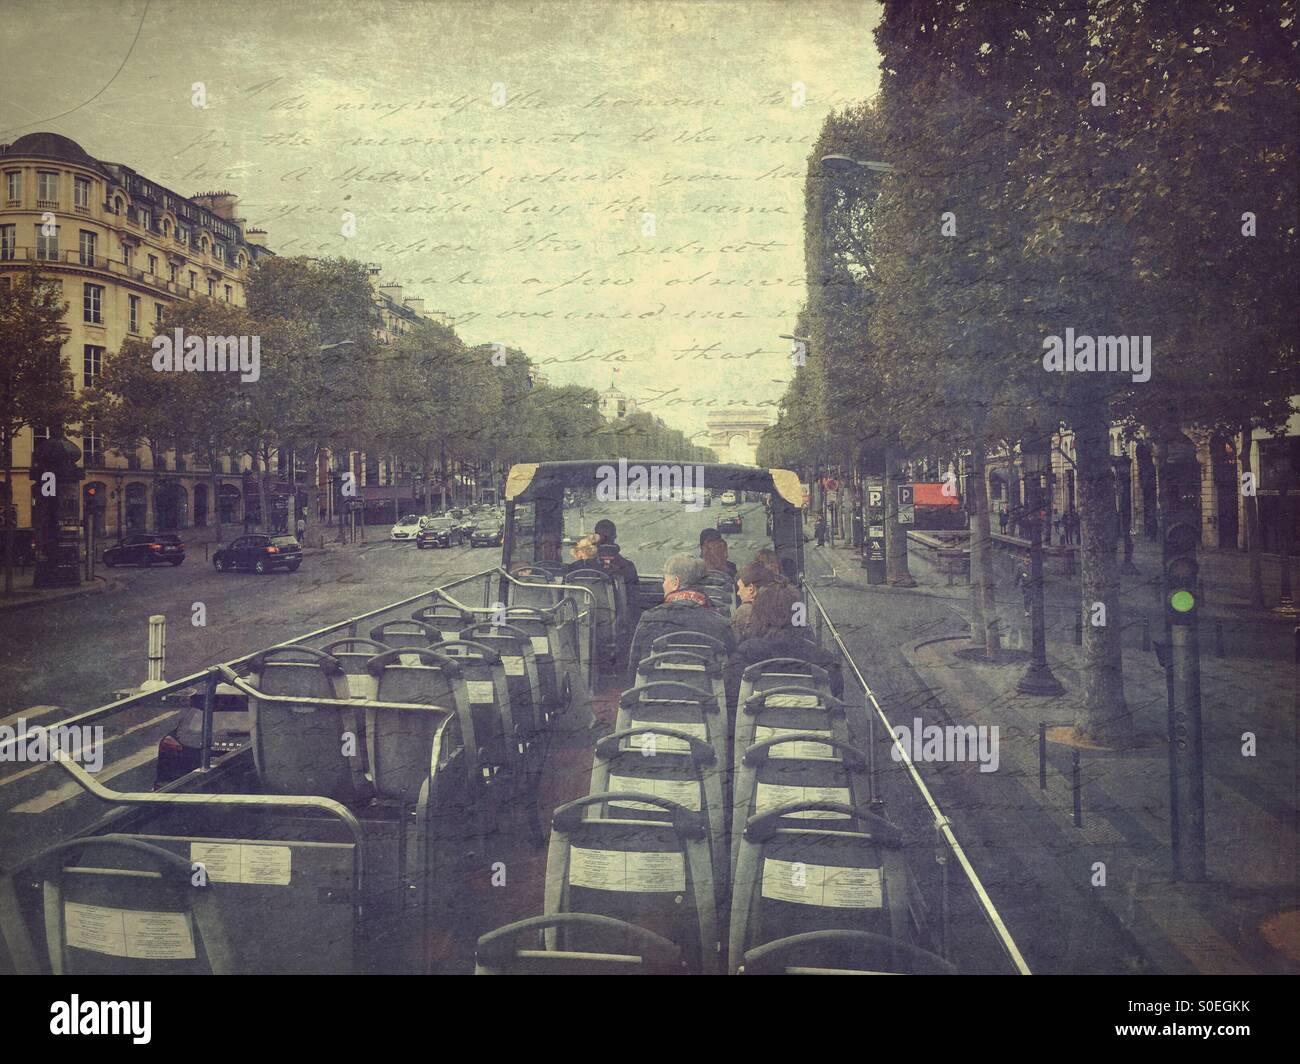 View of Champs Elysees from roof of open air sightseeing bus in Paris, France. Vintage paper texture with lettering Stock Photo